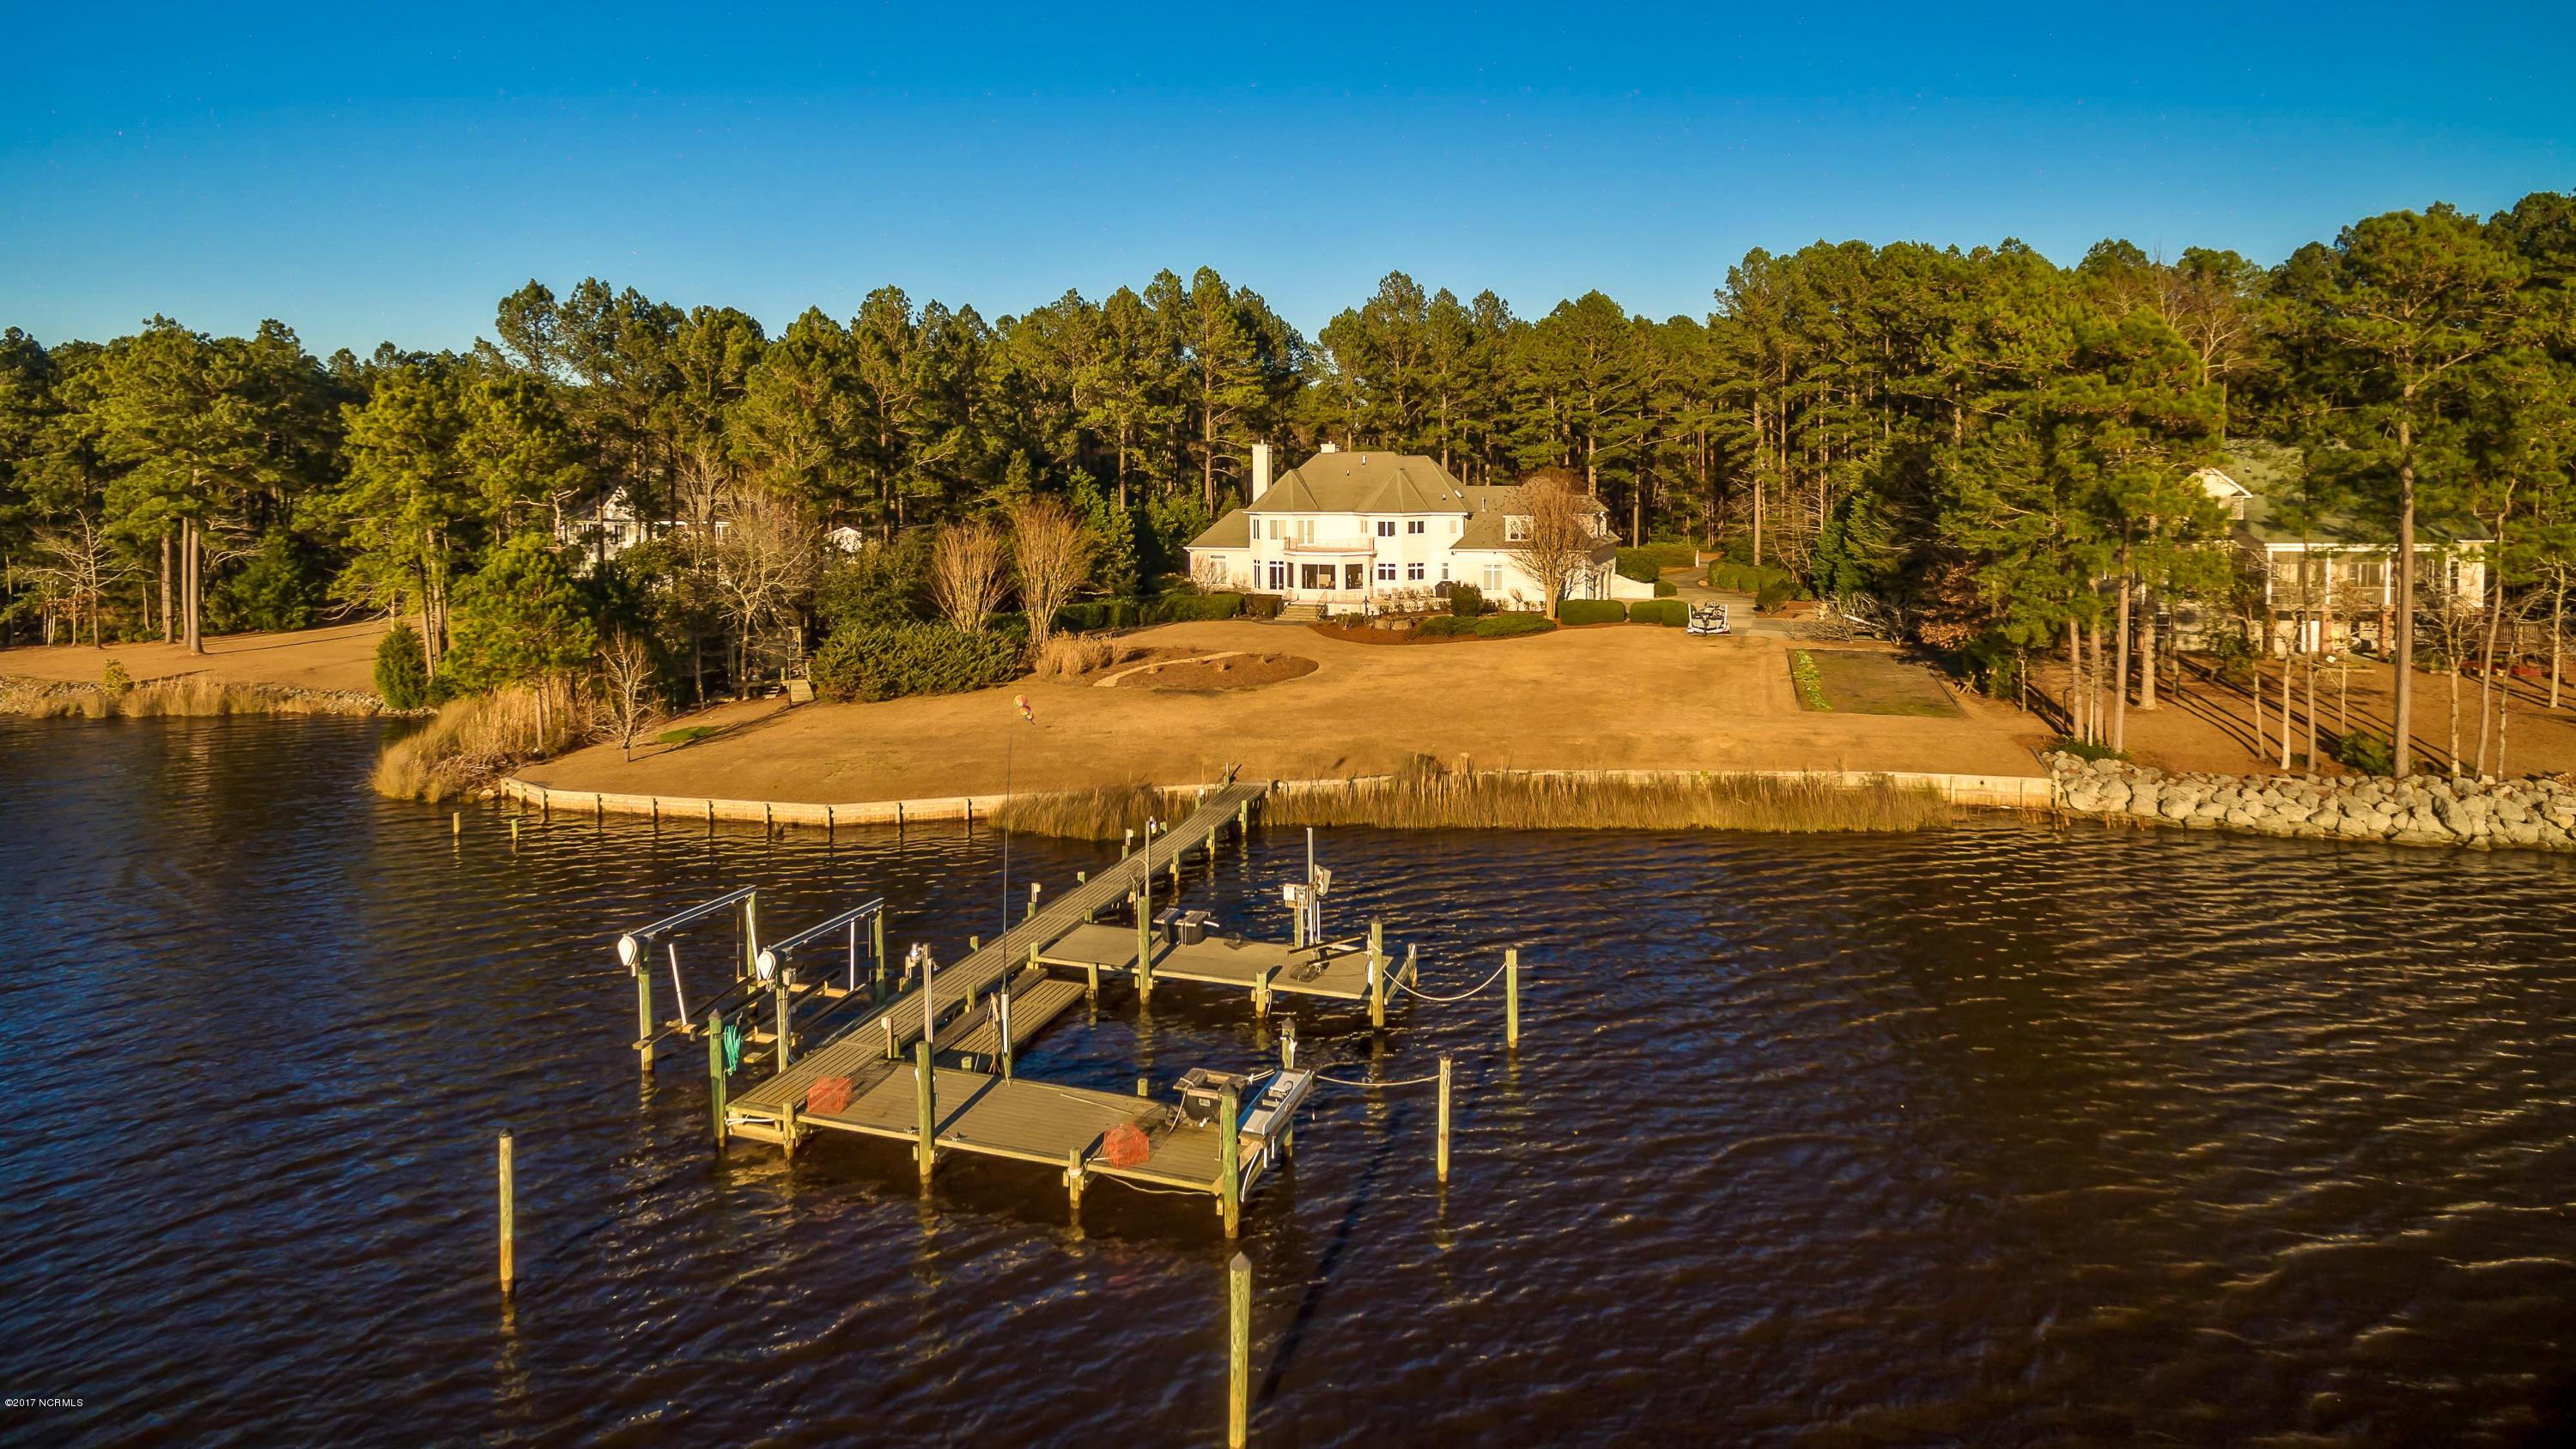 210 Sumter Court, Havelock, North Carolina 28532, 3 Bedrooms Bedrooms, 15 Rooms Rooms,4 BathroomsBathrooms,Single family residence,For sale,Sumter,100169862